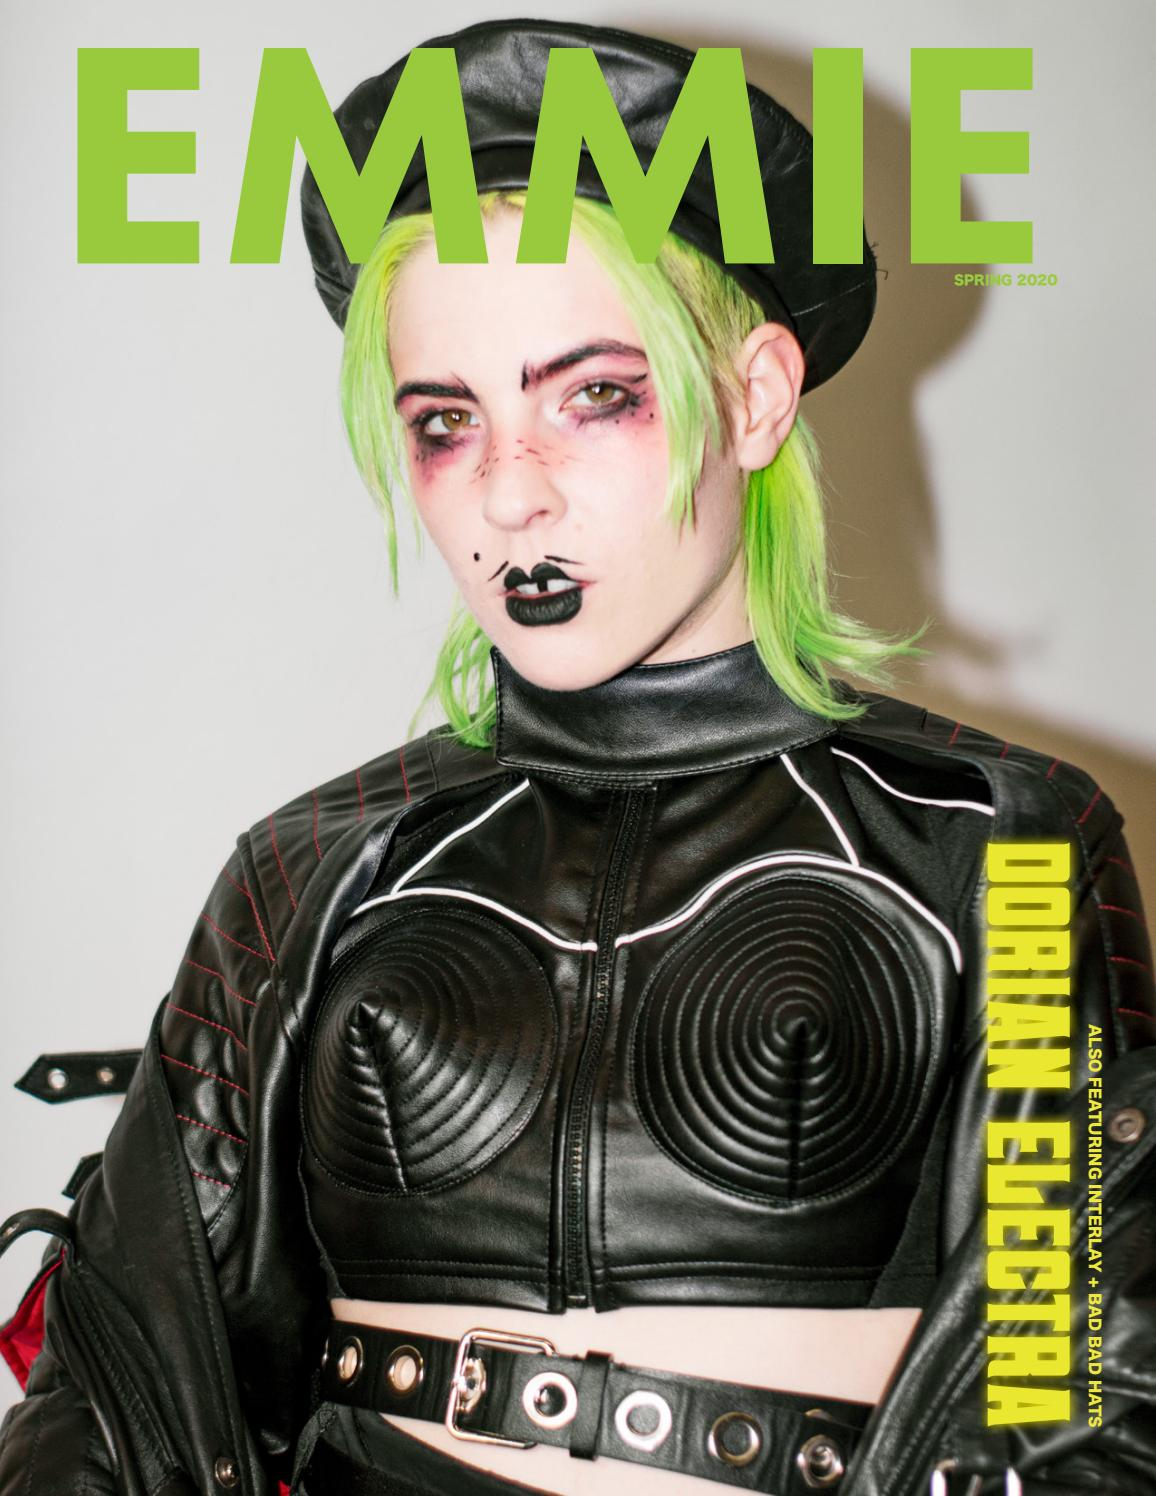 College Says Cowboy Halloween Costume Is Inappropriate 2020 Emmie Spring 2020 issue by Wisconsin Union   issuu